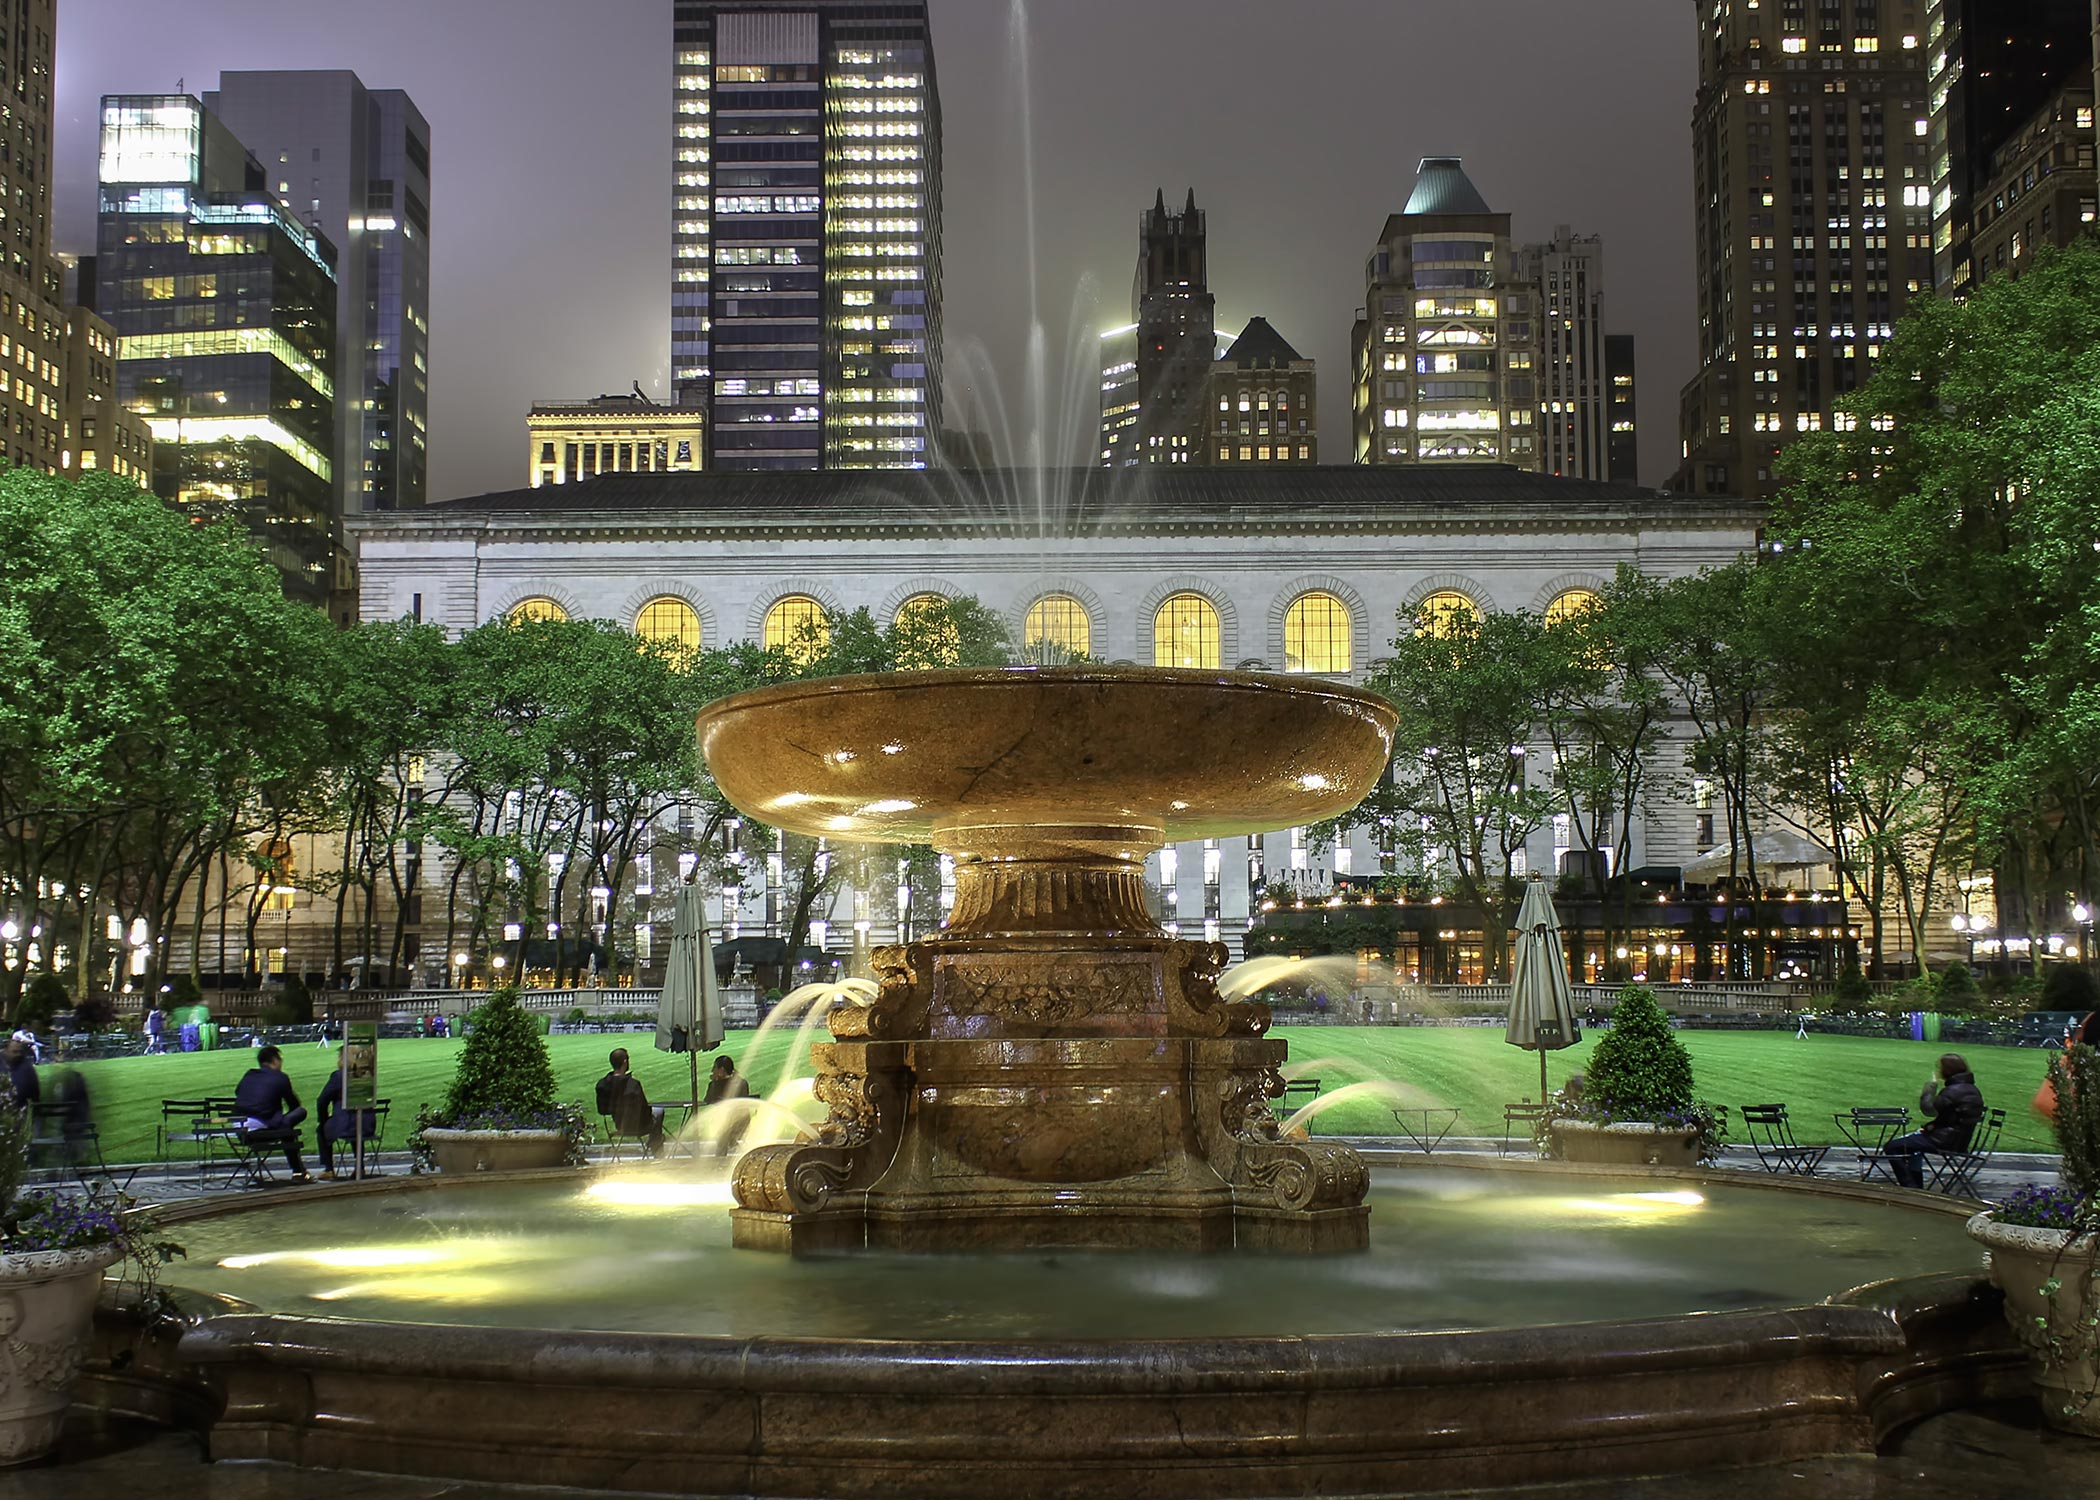 Night time photo of a large fountain in Bryant Park